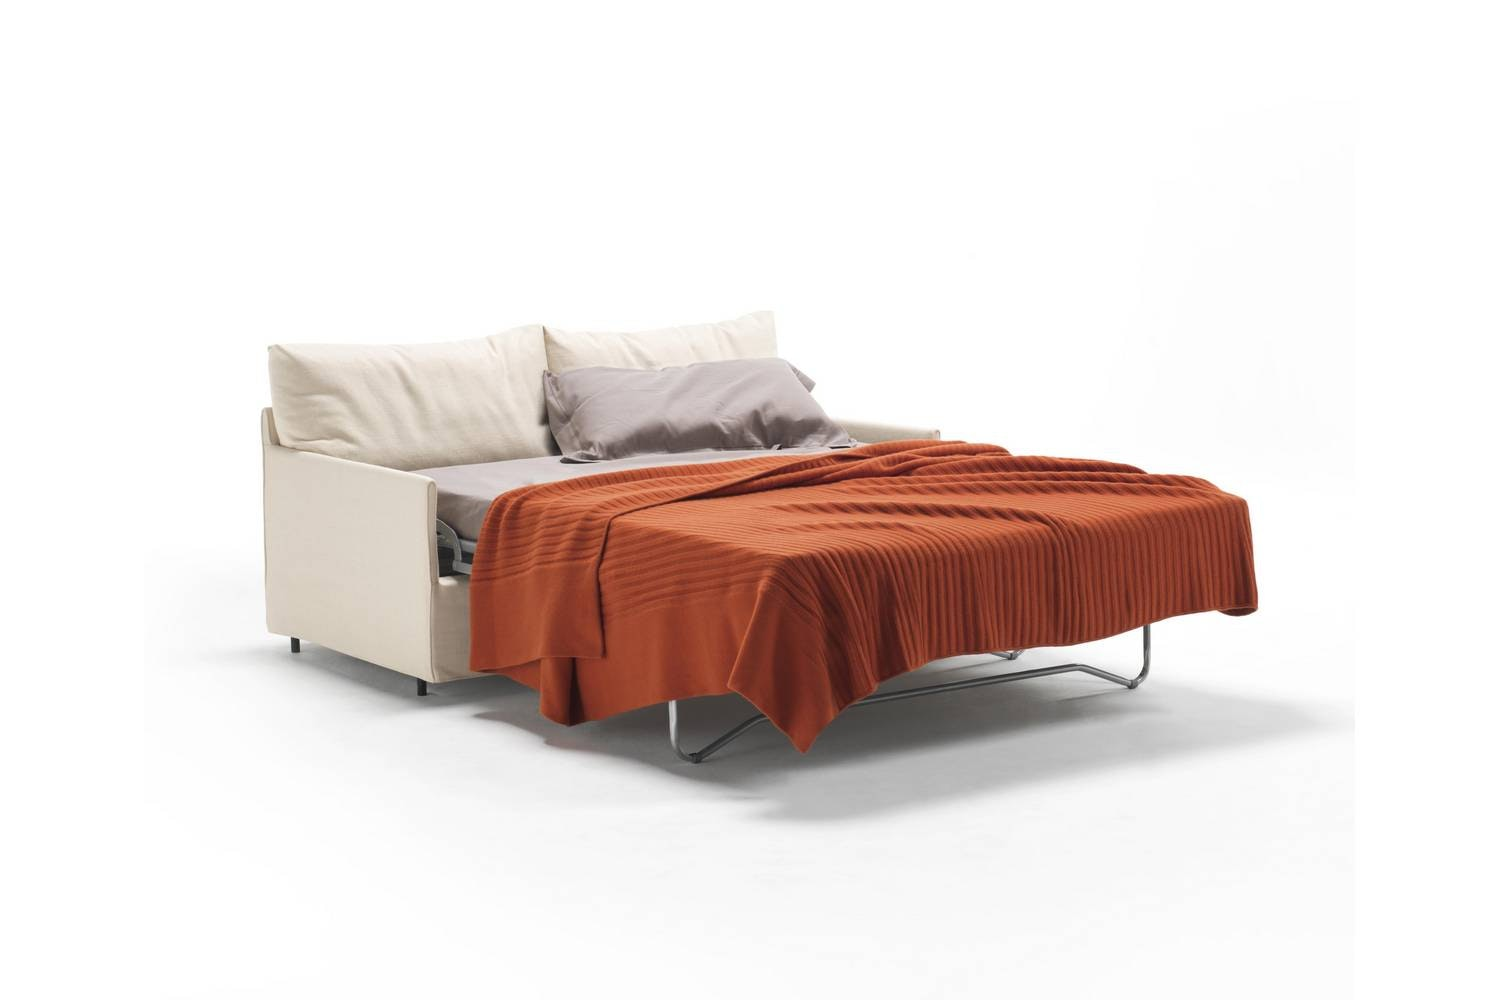 Chemise Sofa Bed by Piero Lissoni for Living Divani